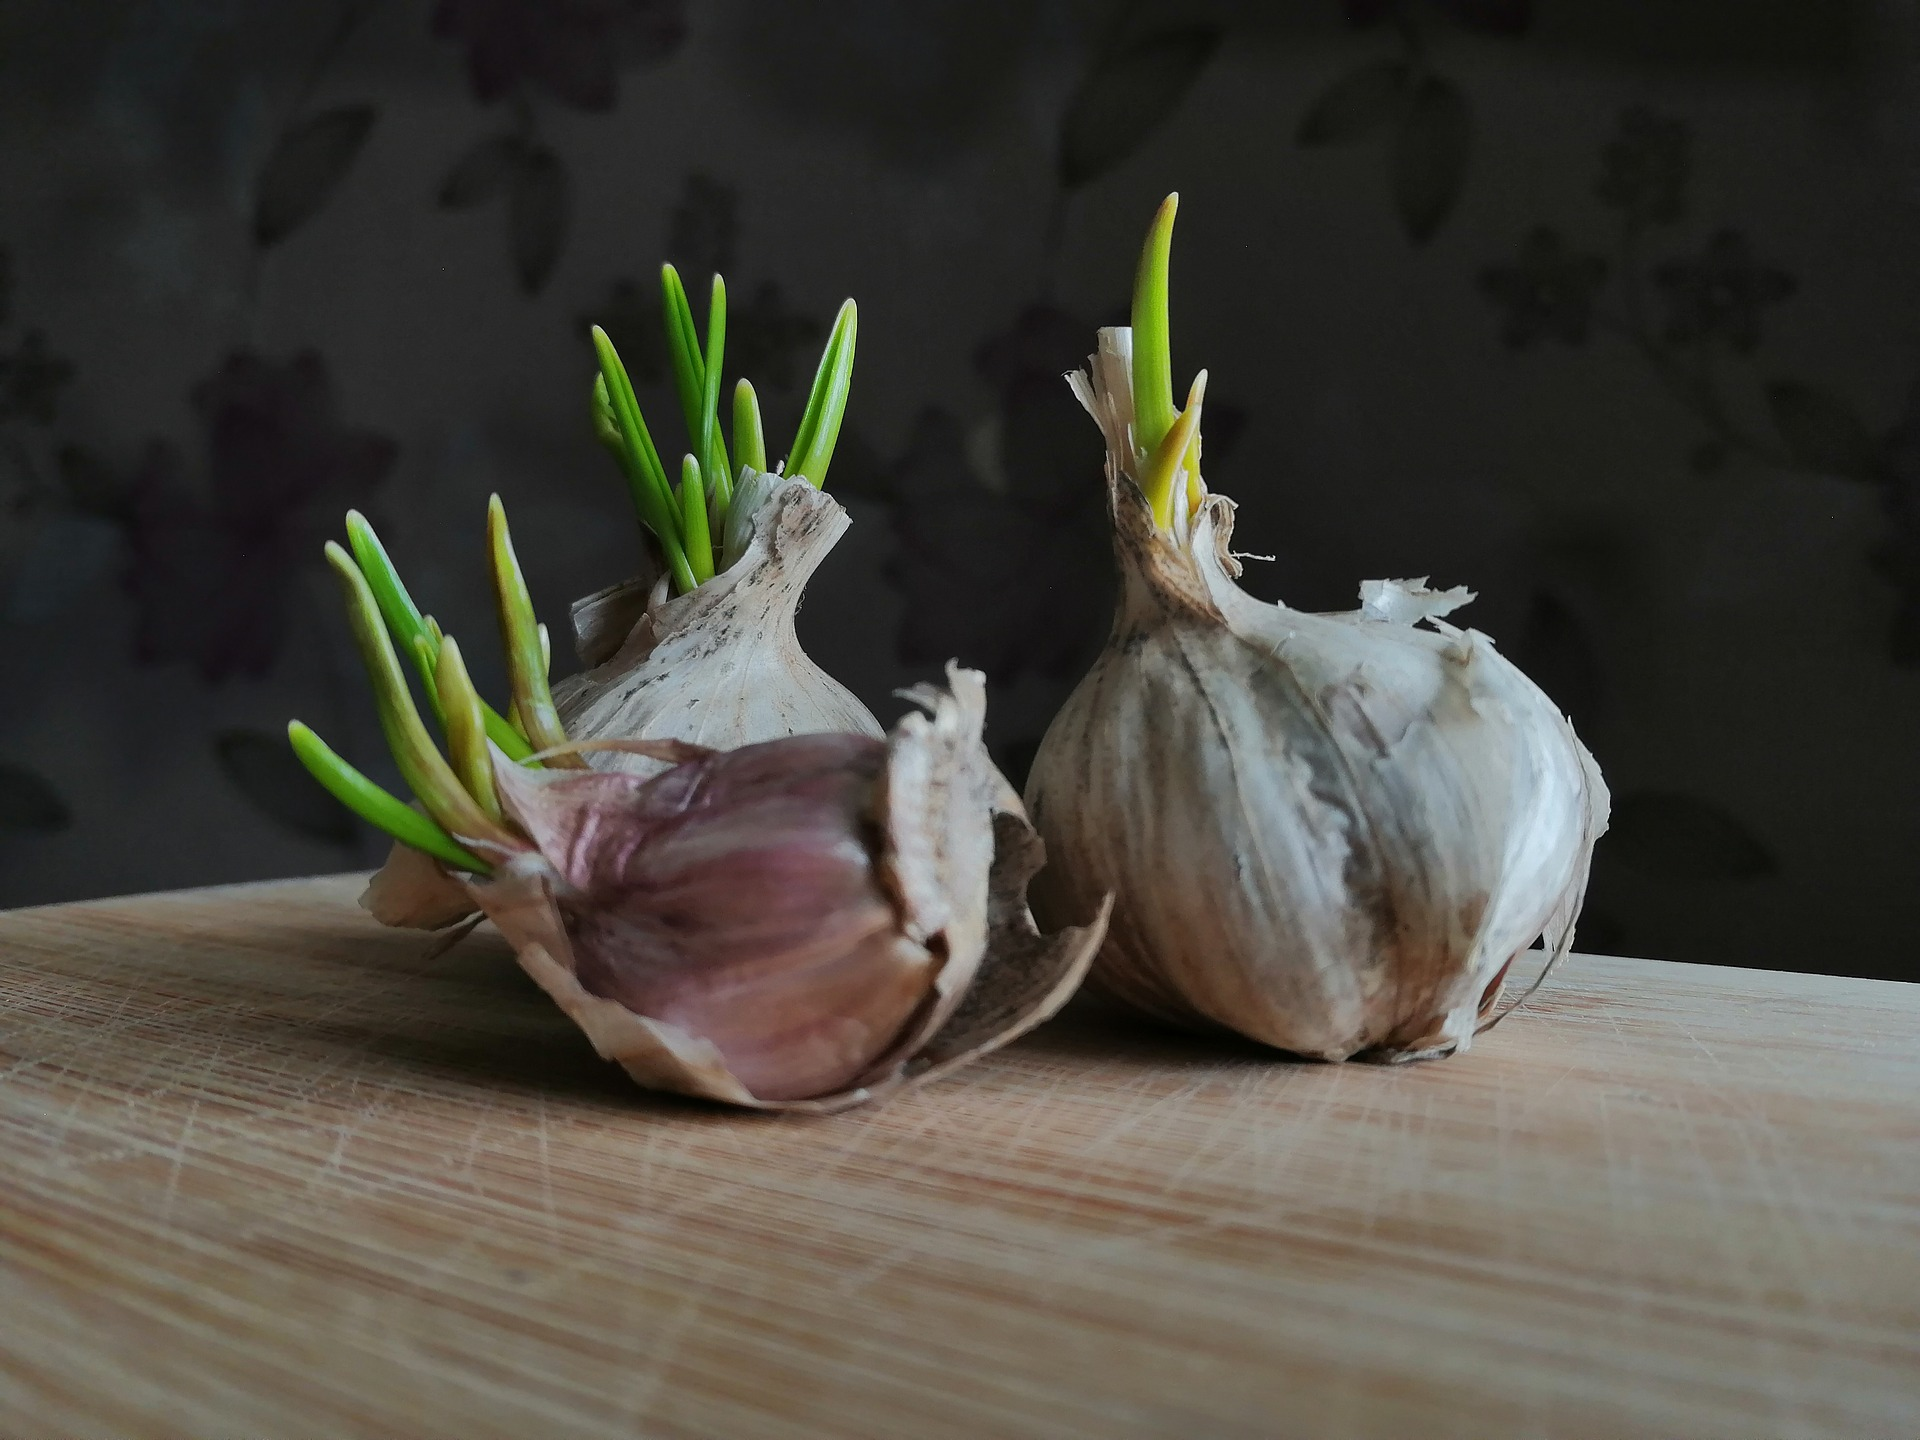 How To Grow Garlic Sprouts Indoors